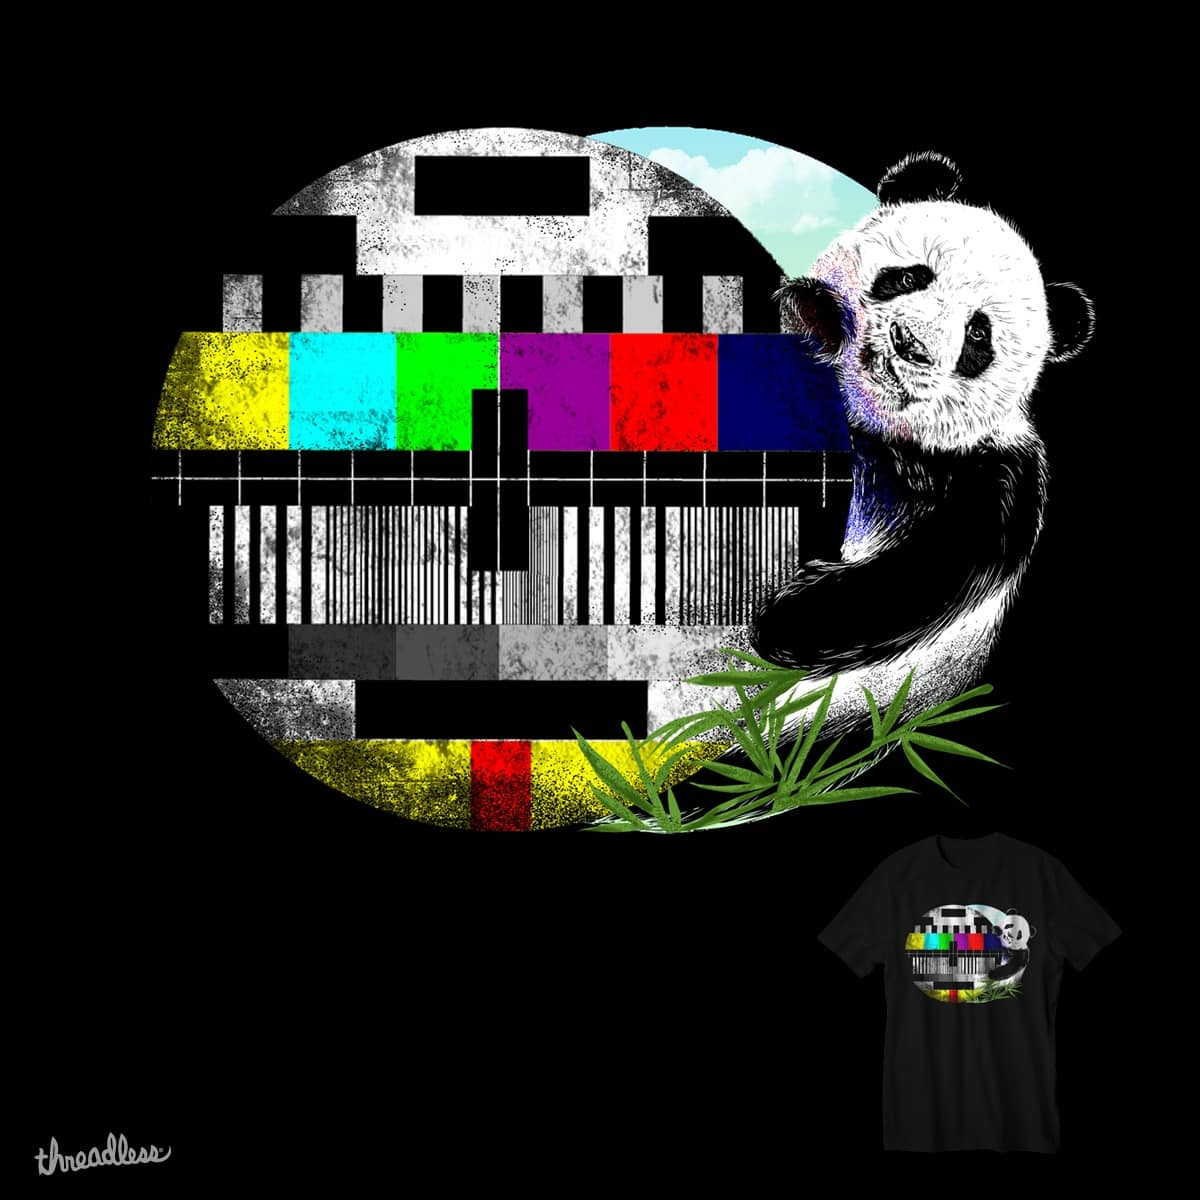 The Unexpected Channel by kooky love on Threadless